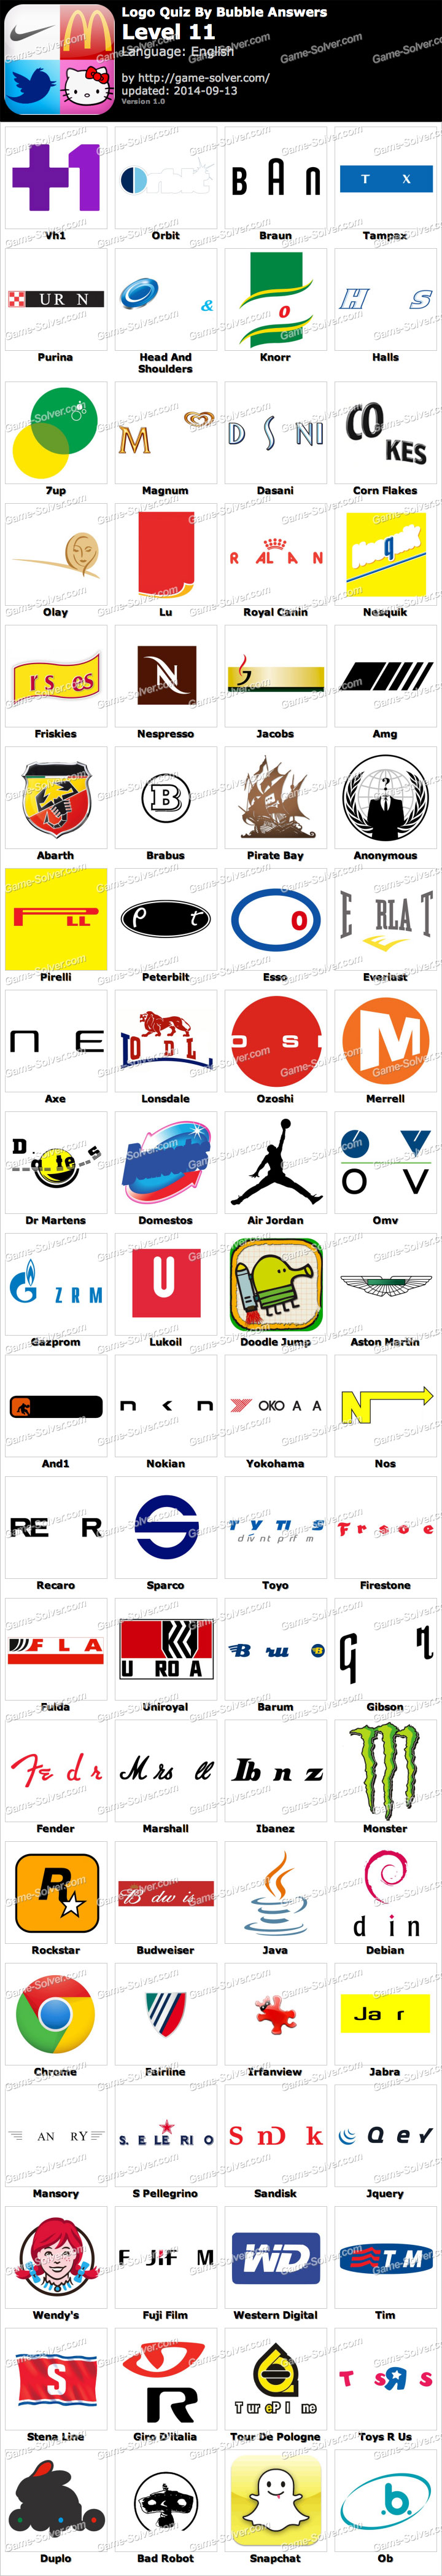 logo quiz by bubble answers level 11 game solver